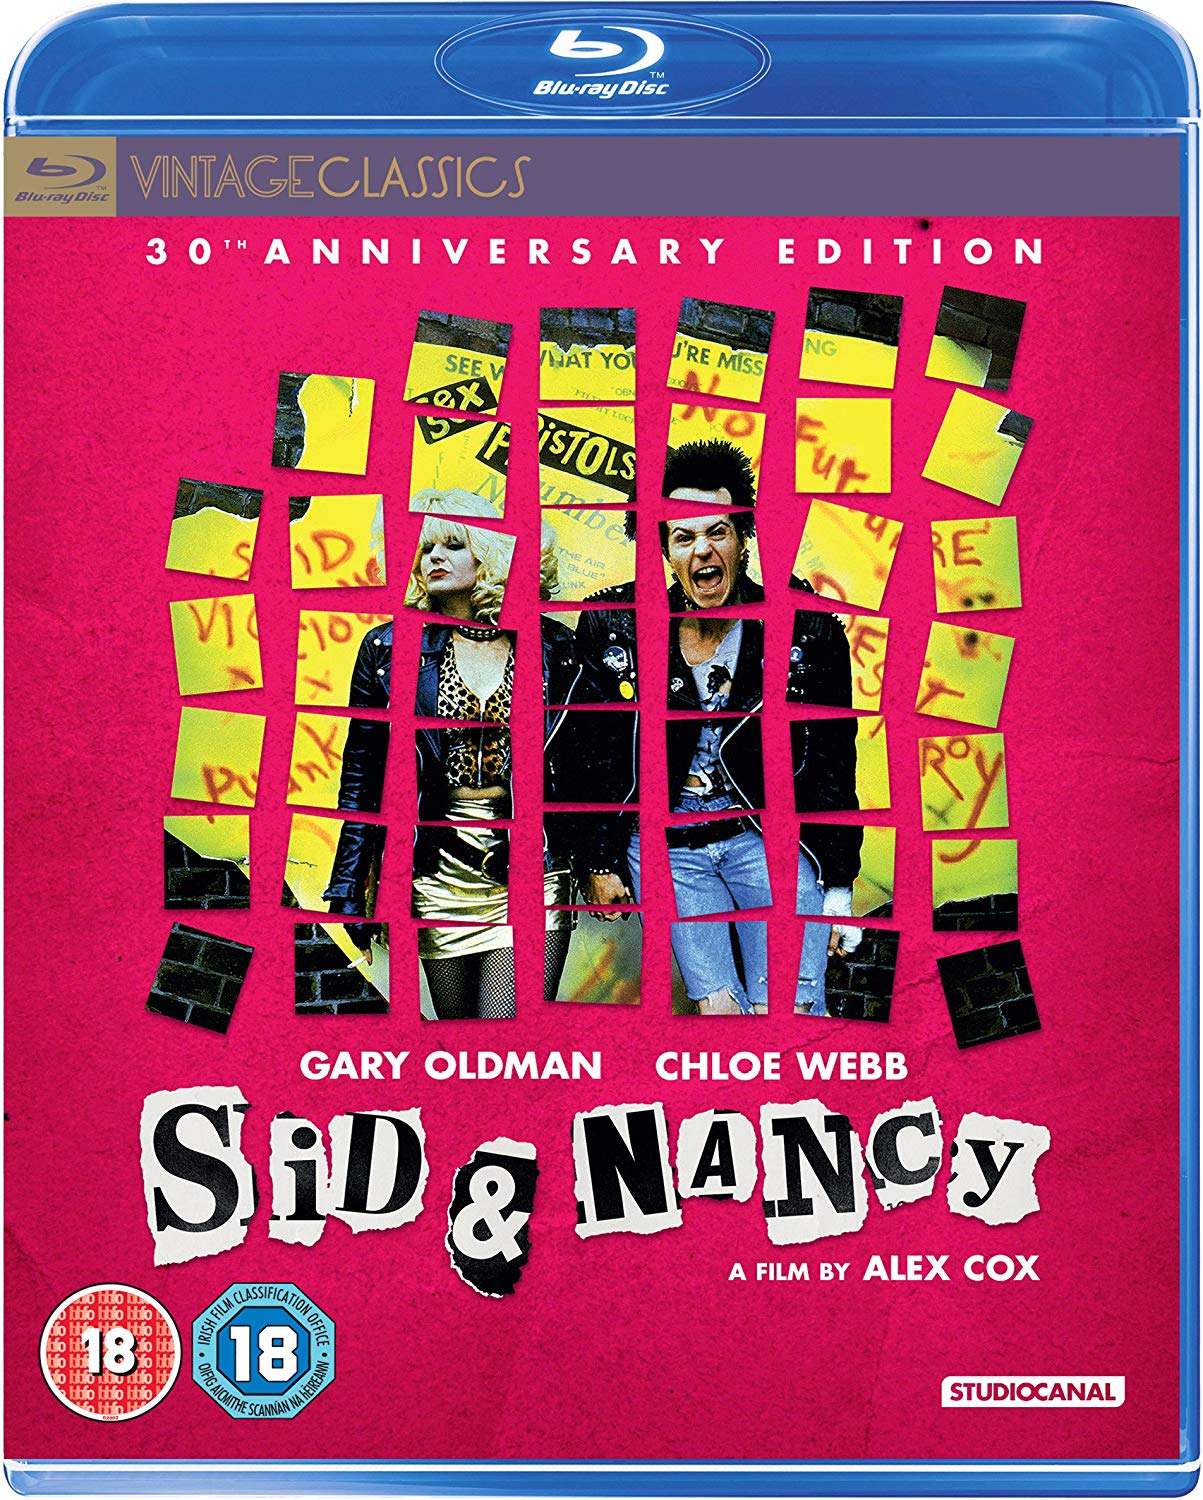 Buy Sid & Nancy